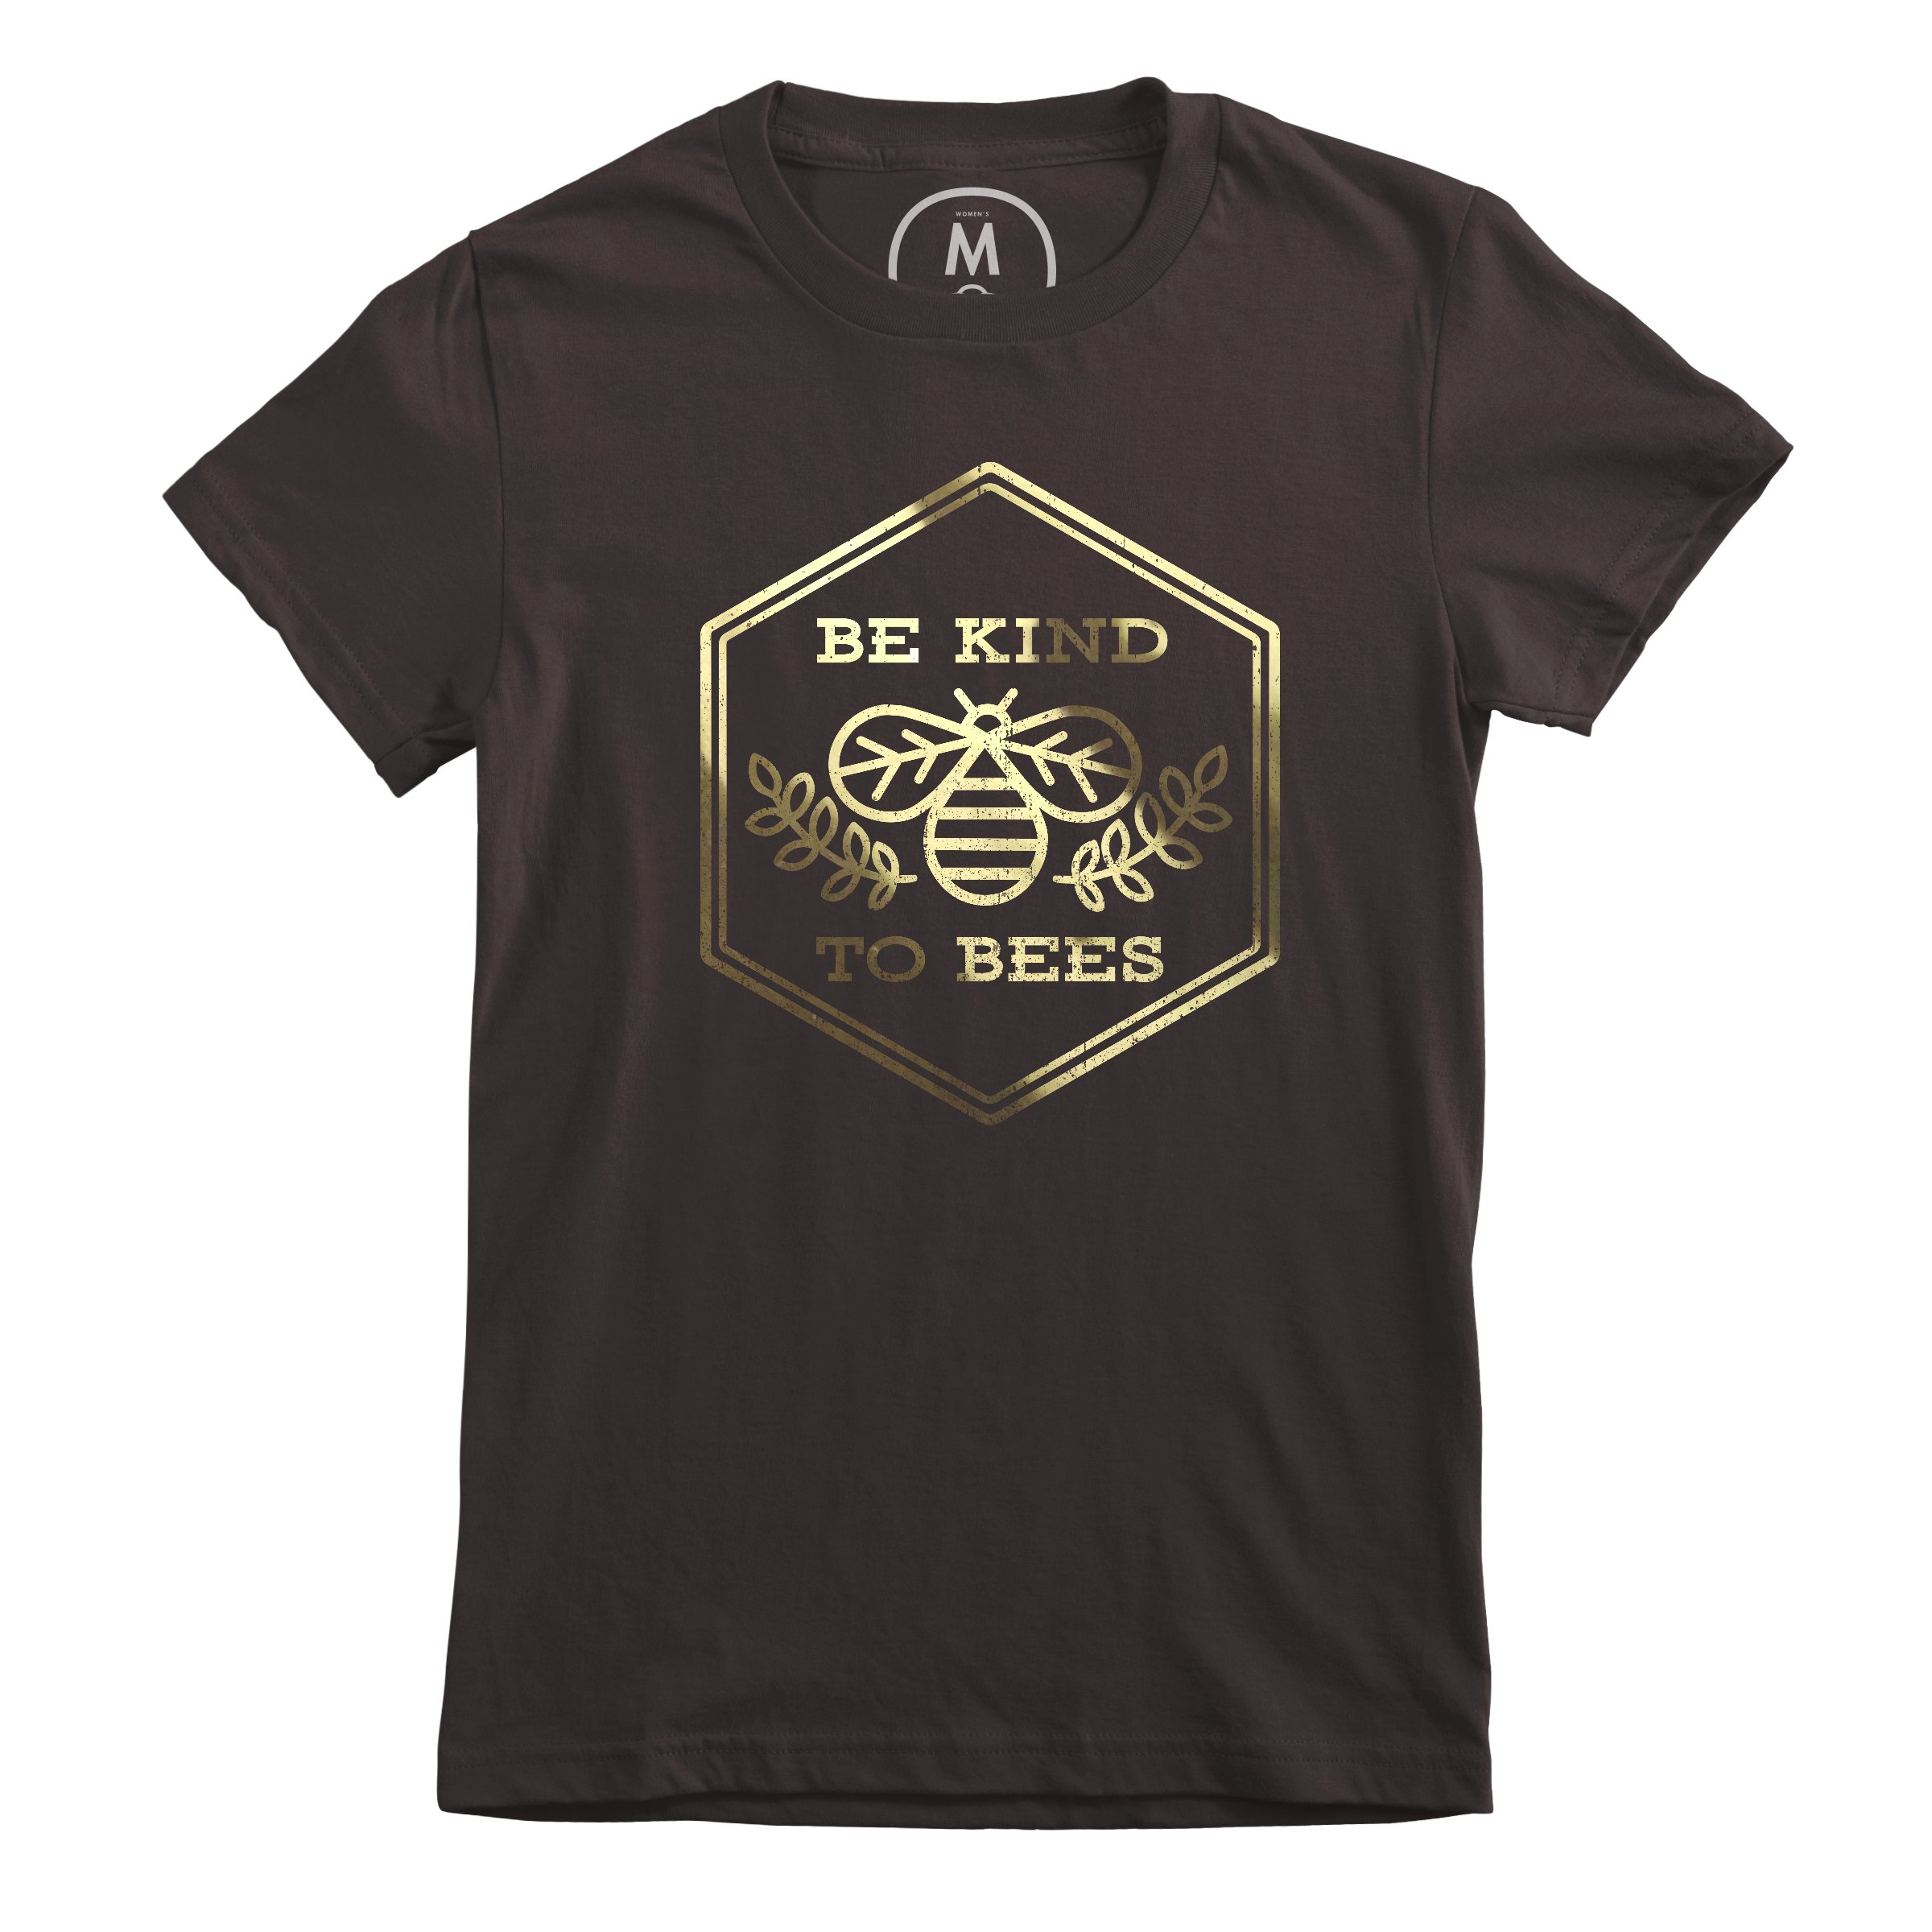 Be Kind to Bees Dark Chocolate (Women's)